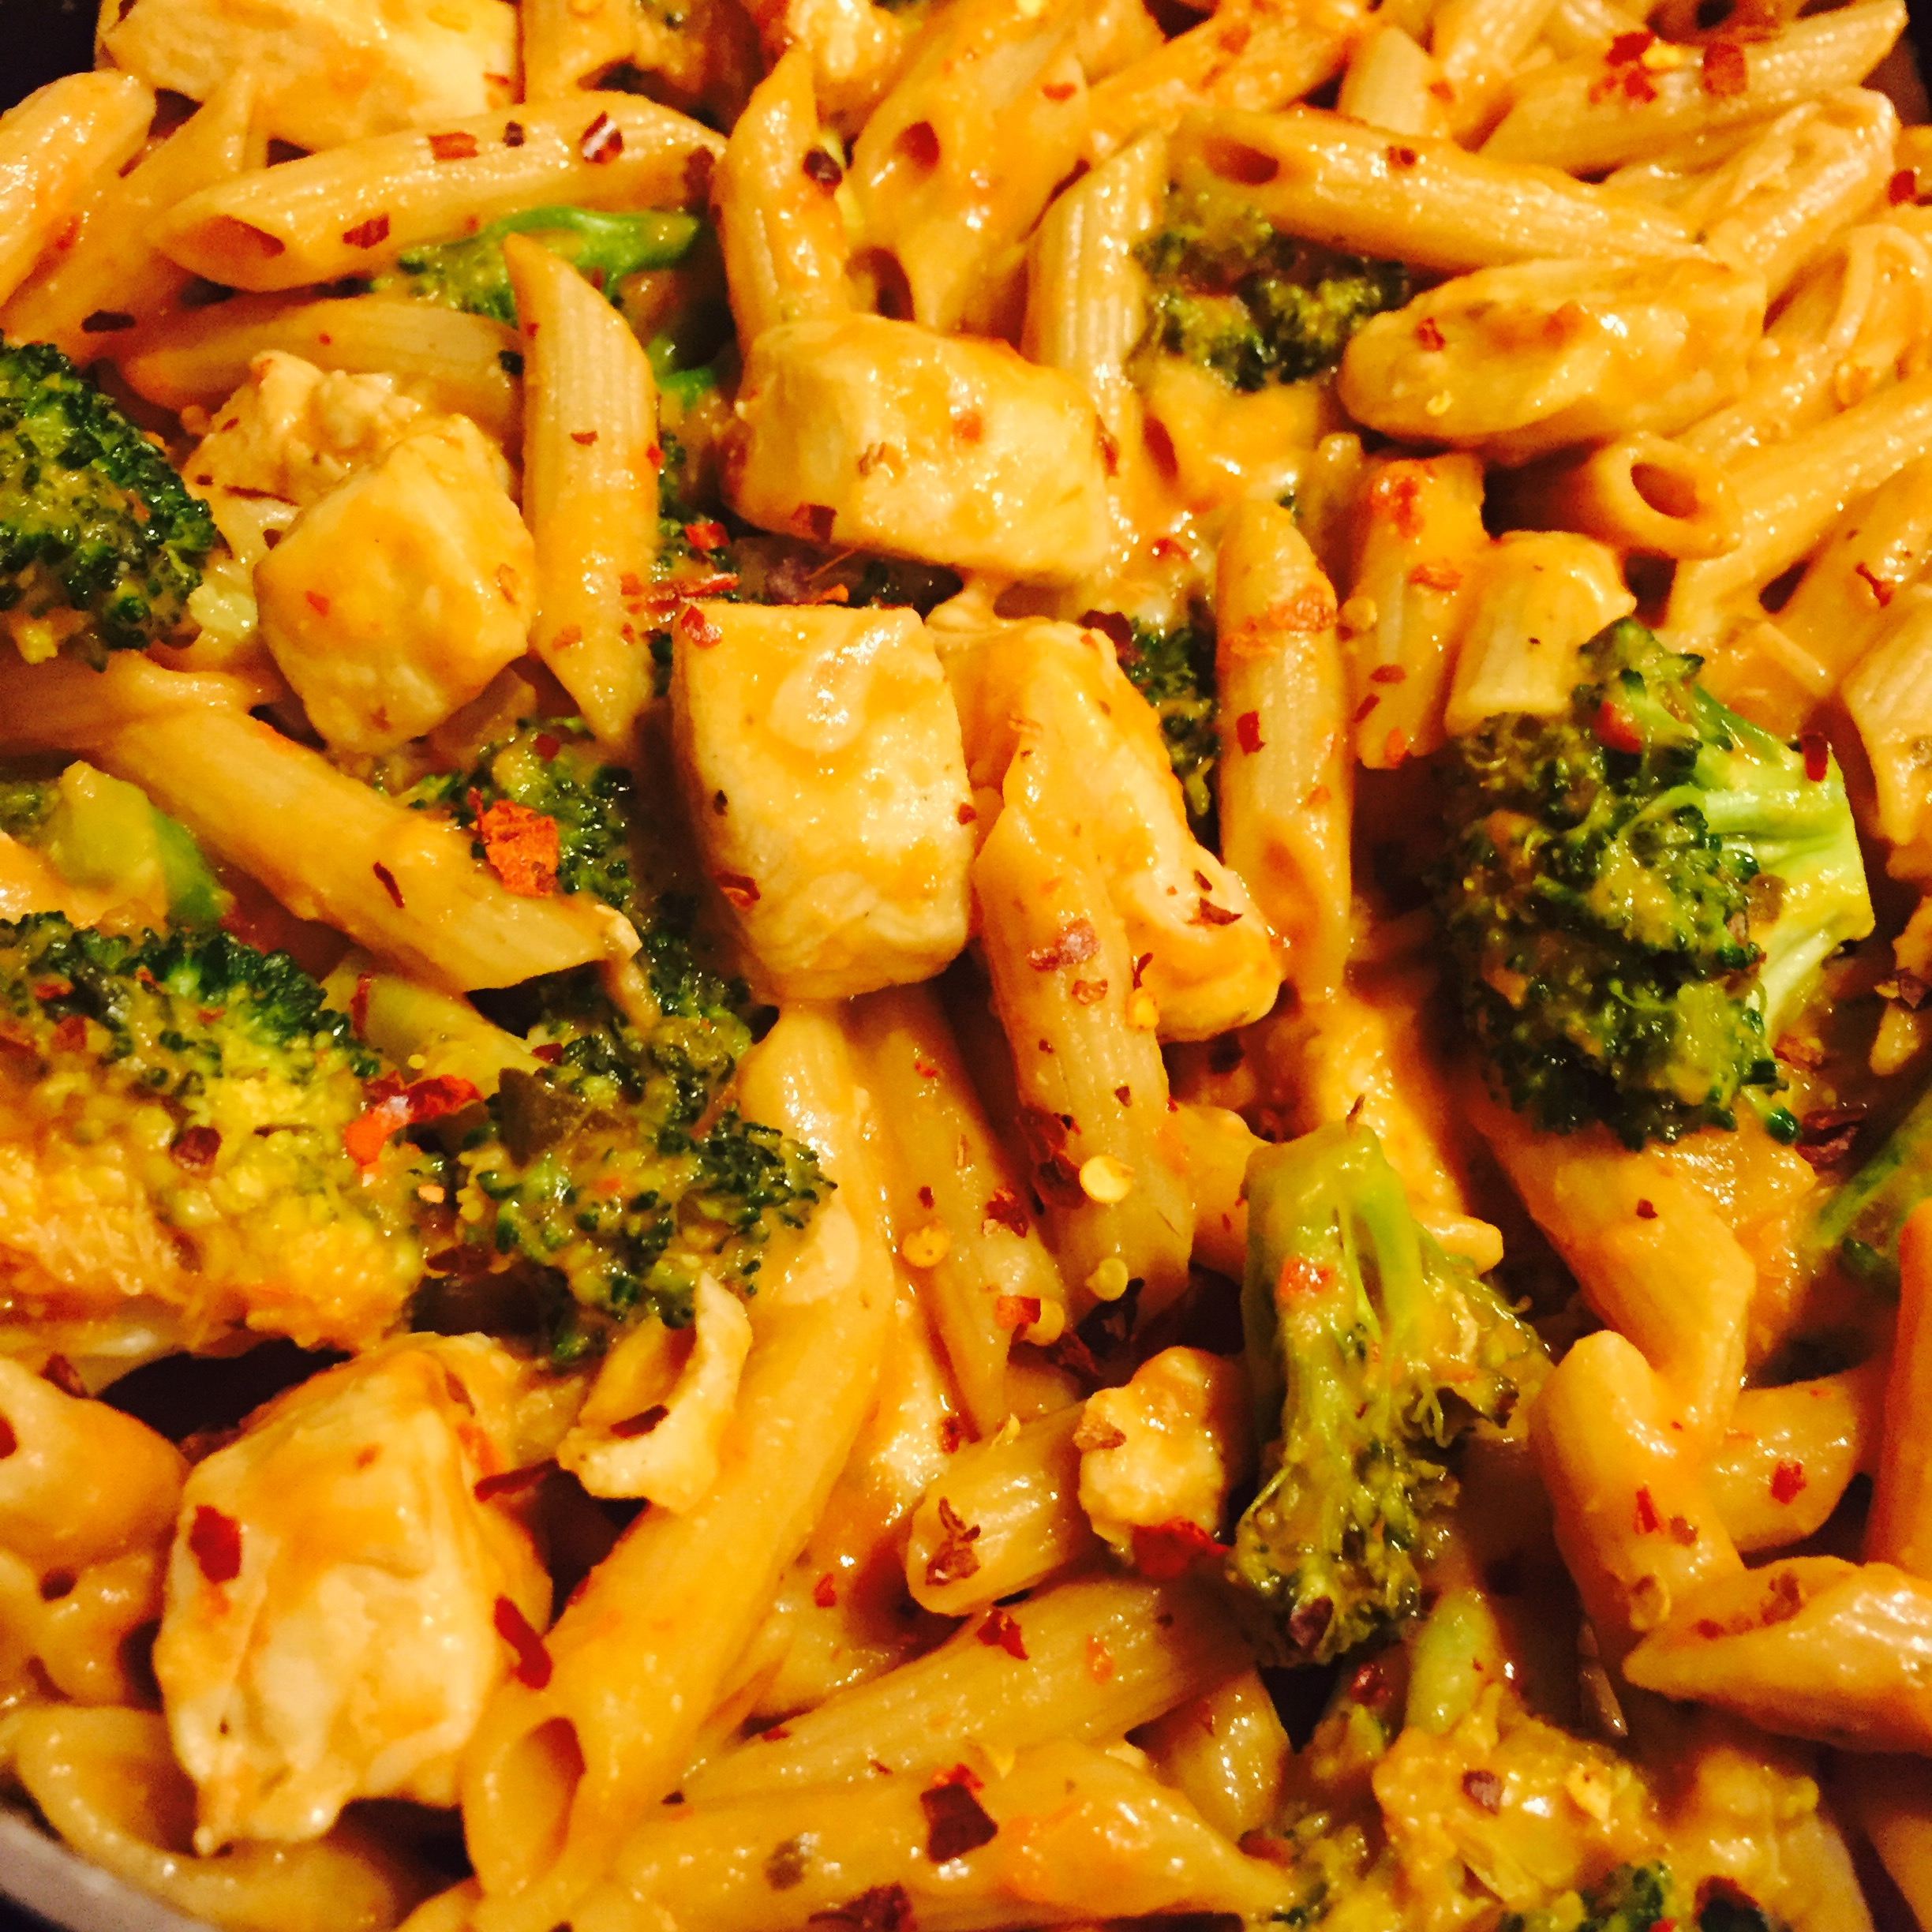 Chicken & Broccoi Penne With Pink Sauce